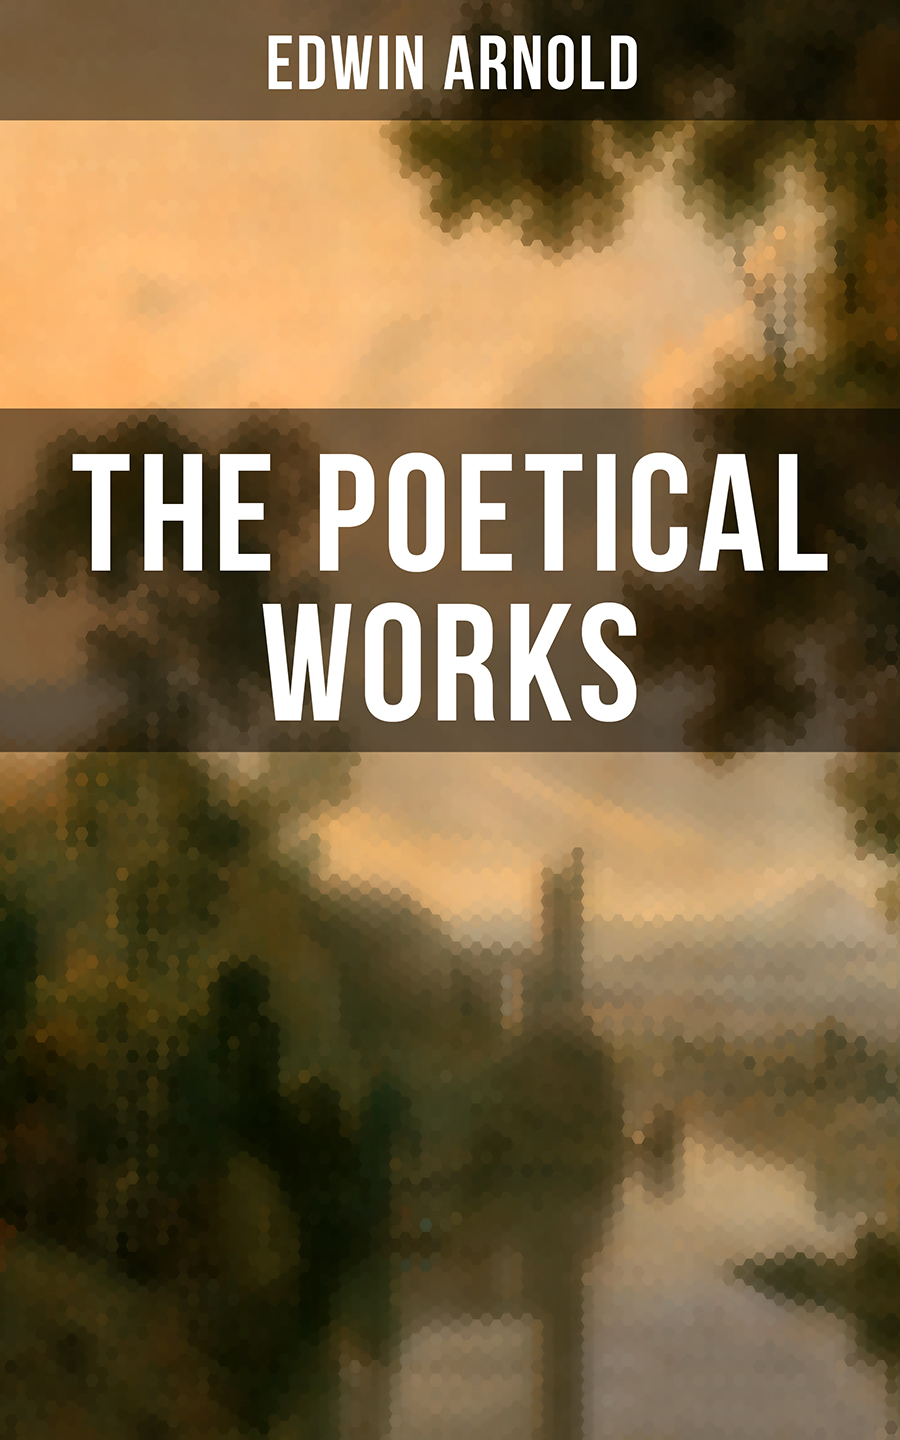 Edwin Arnold The Poetical Works of Edwin Arnold